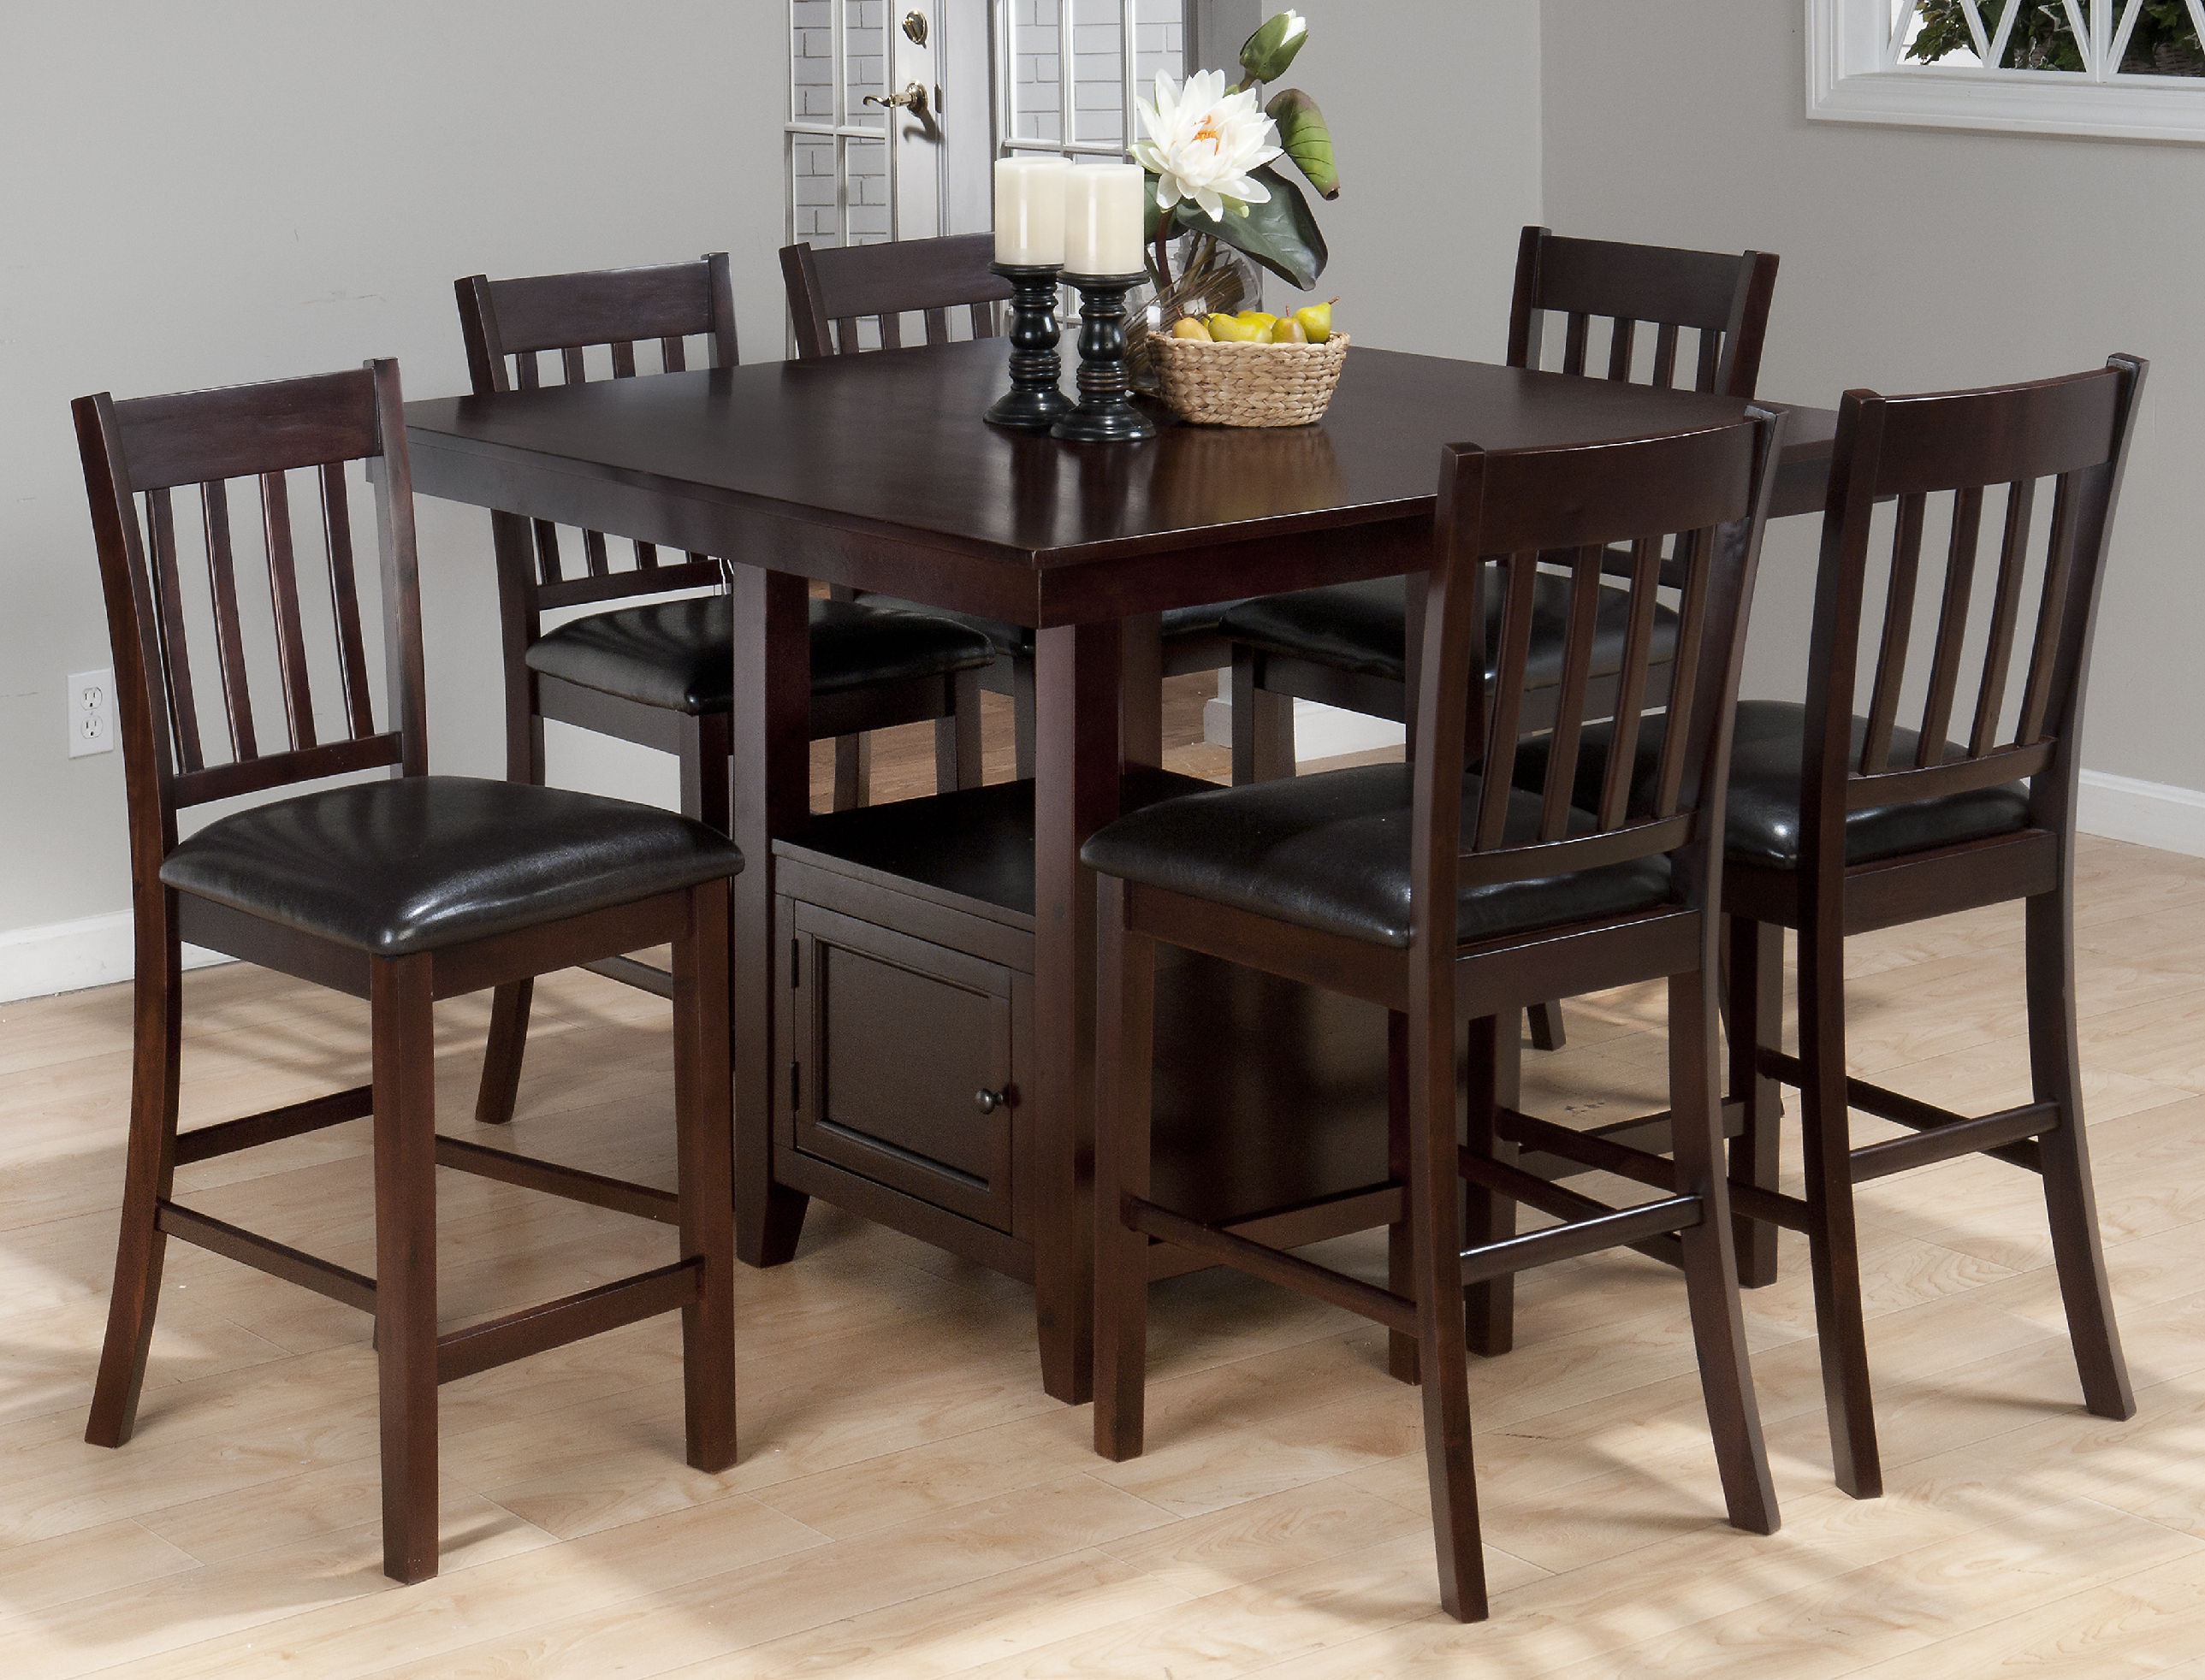 Best ideas about Bar Height Dining Table . Save or Pin Bar Height Dining Room Table Now.